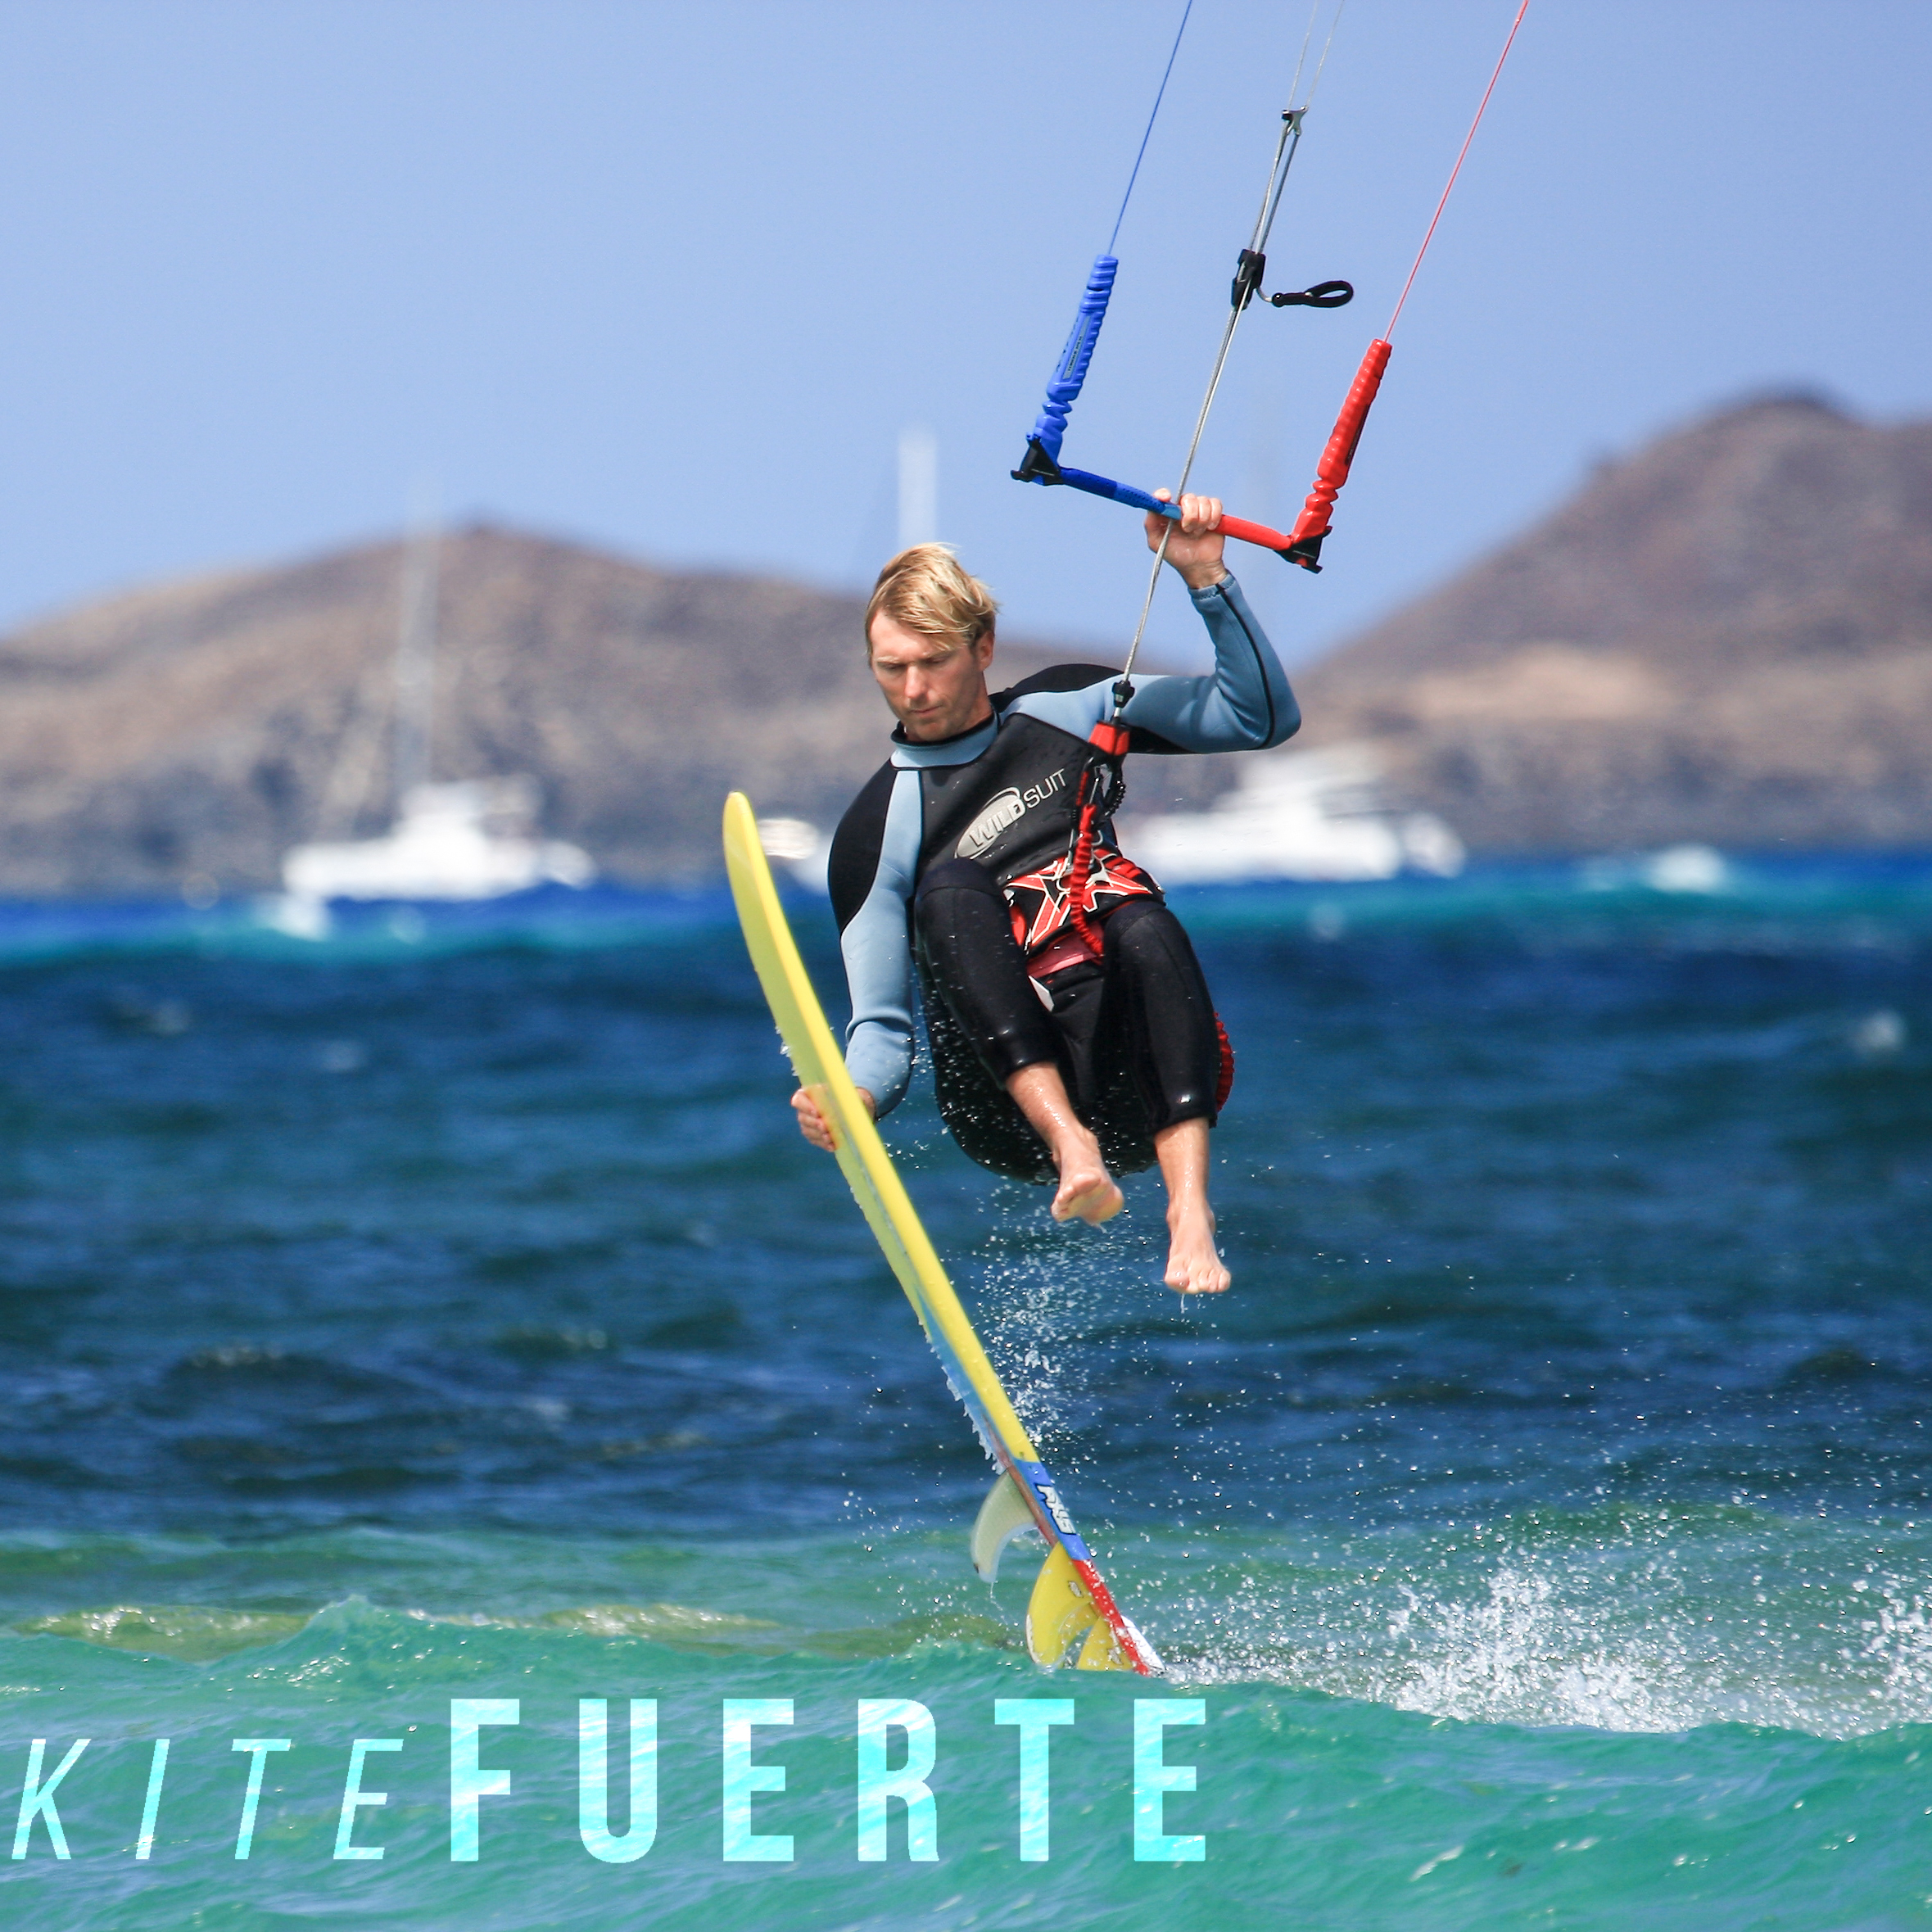 Flag beach kitesurfing Fuerteventura photos photographer